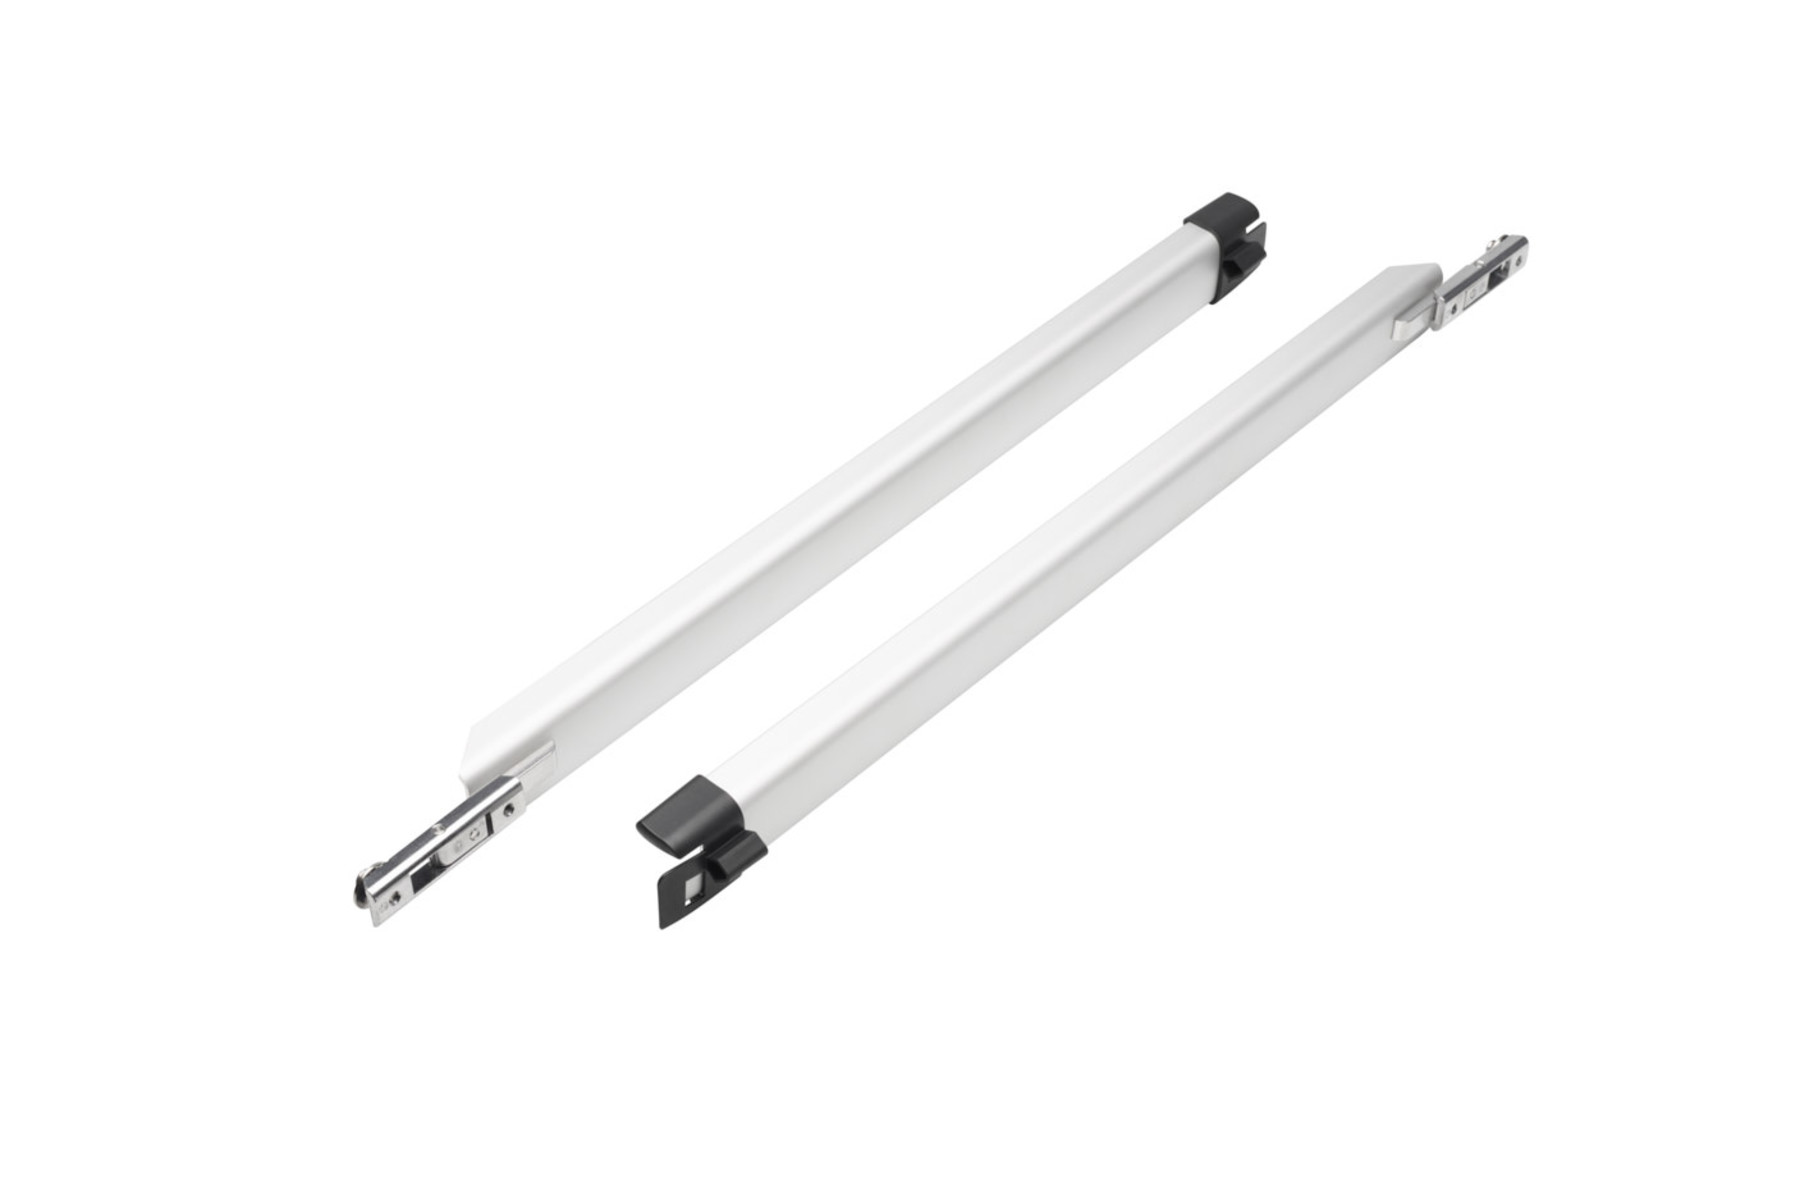 Thule Tension Arm Set TO 6300 302095